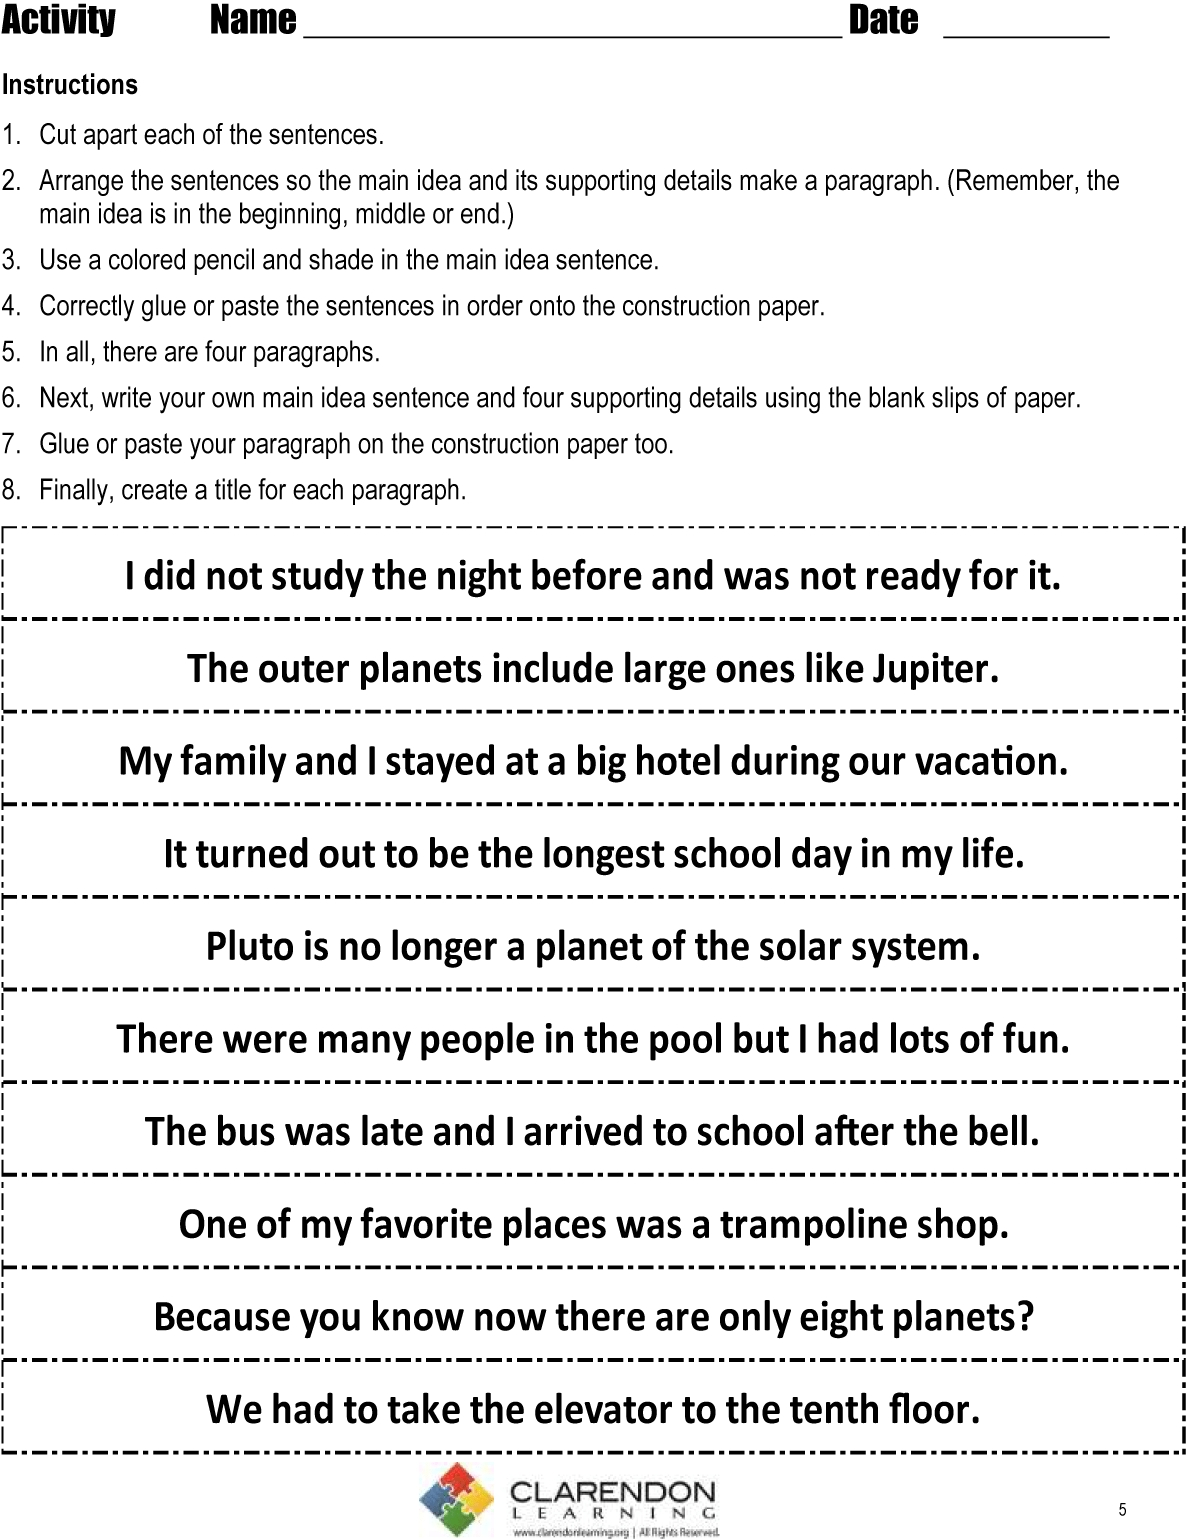 10 Awesome Main Idea Worksheets For Middle School main idea grades 3 4 lesson plan clarendon learning 15 2021